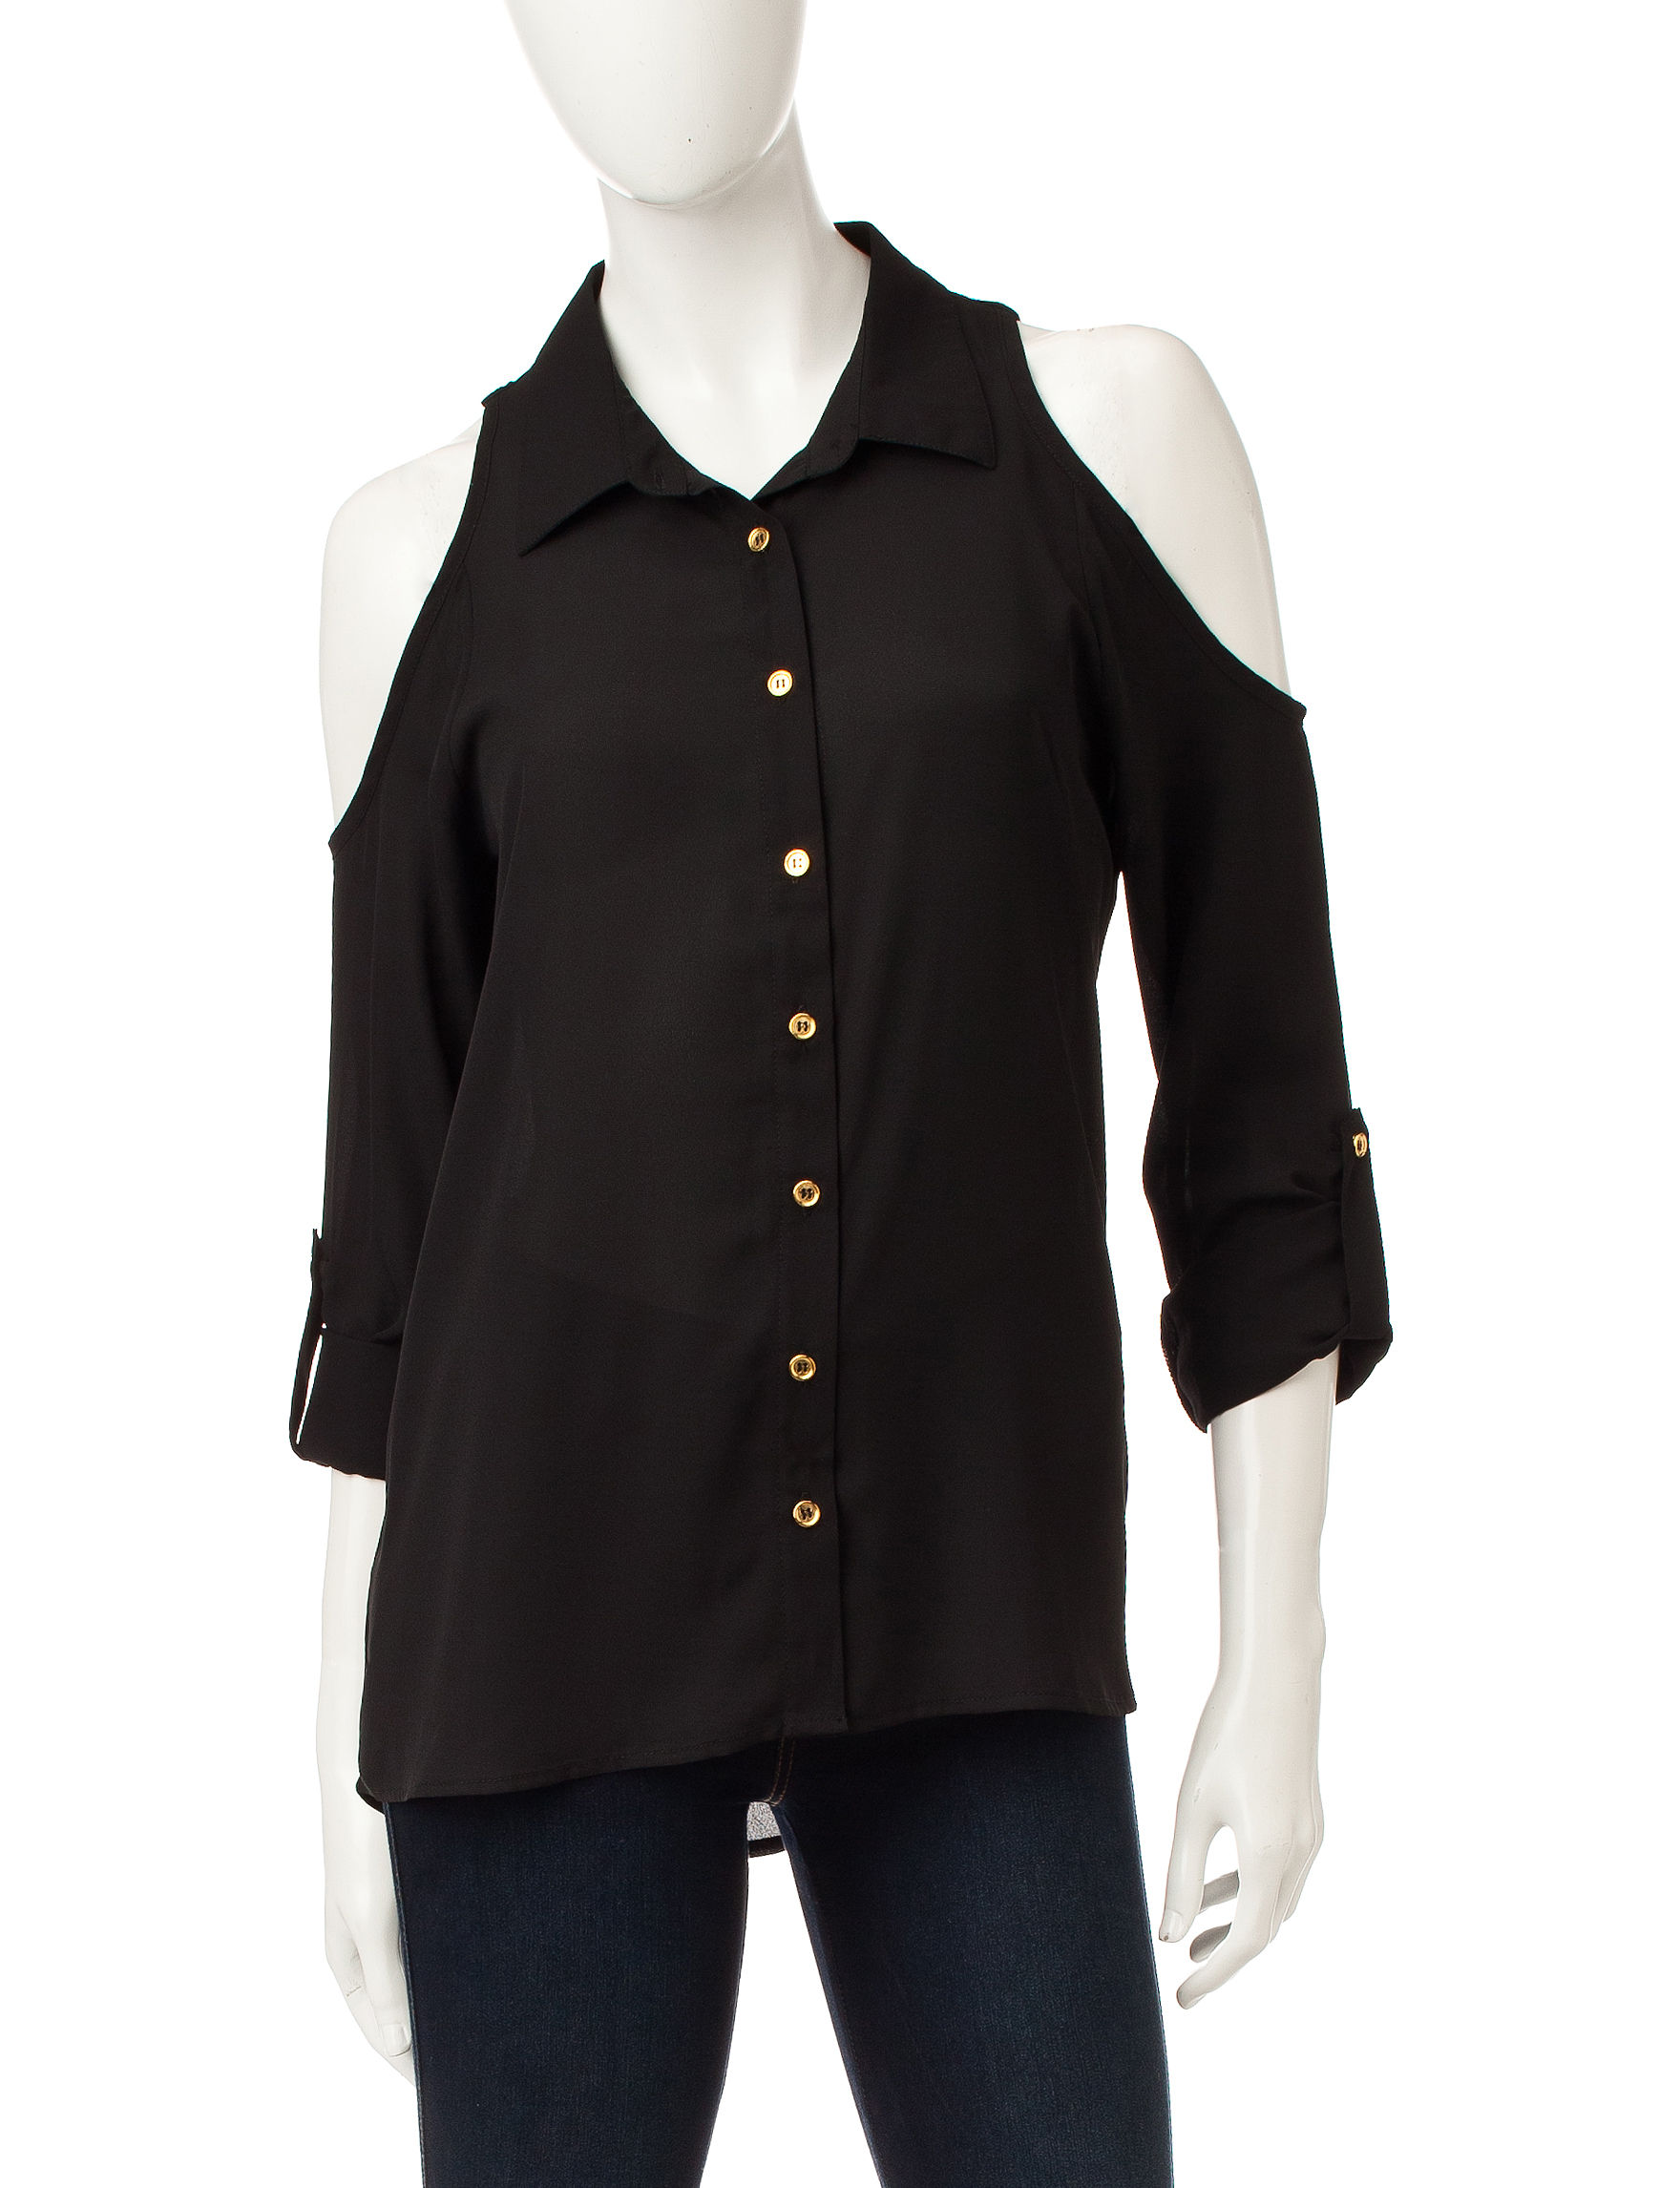 Wishful Park Black Casual Button Down Shirts